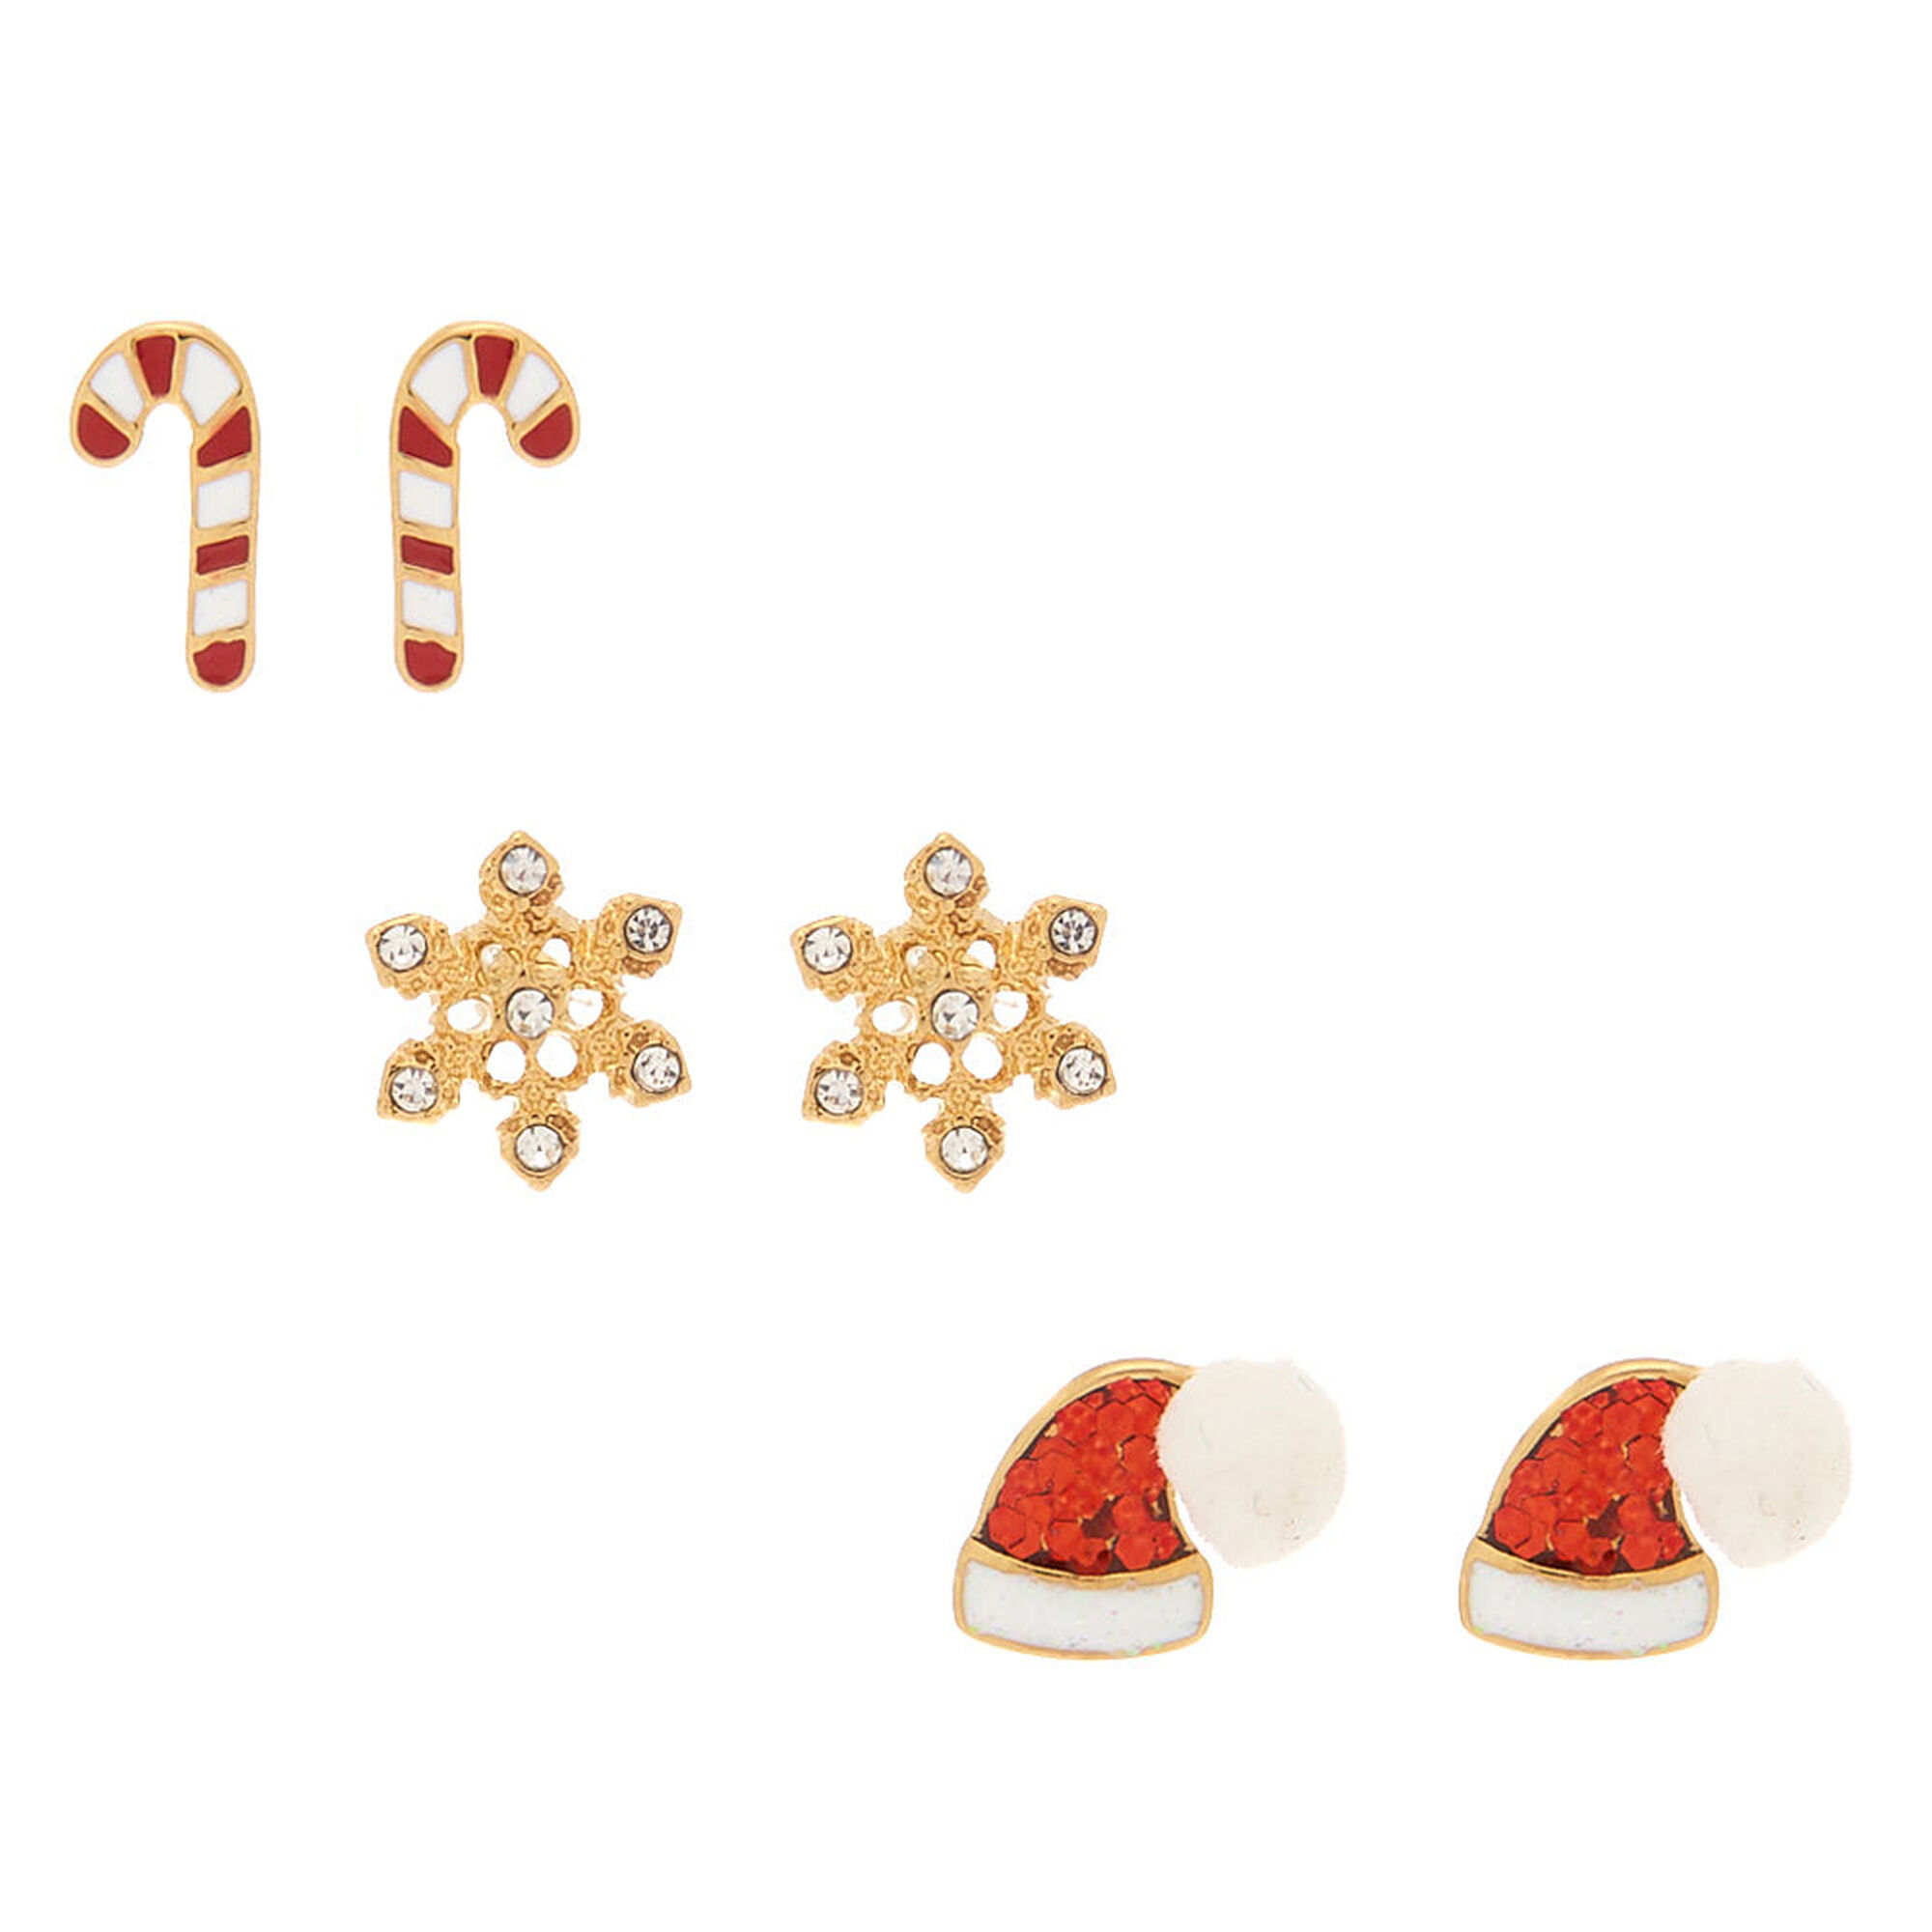 18kt North Pole Holiday Stud Earrings 3 Pack